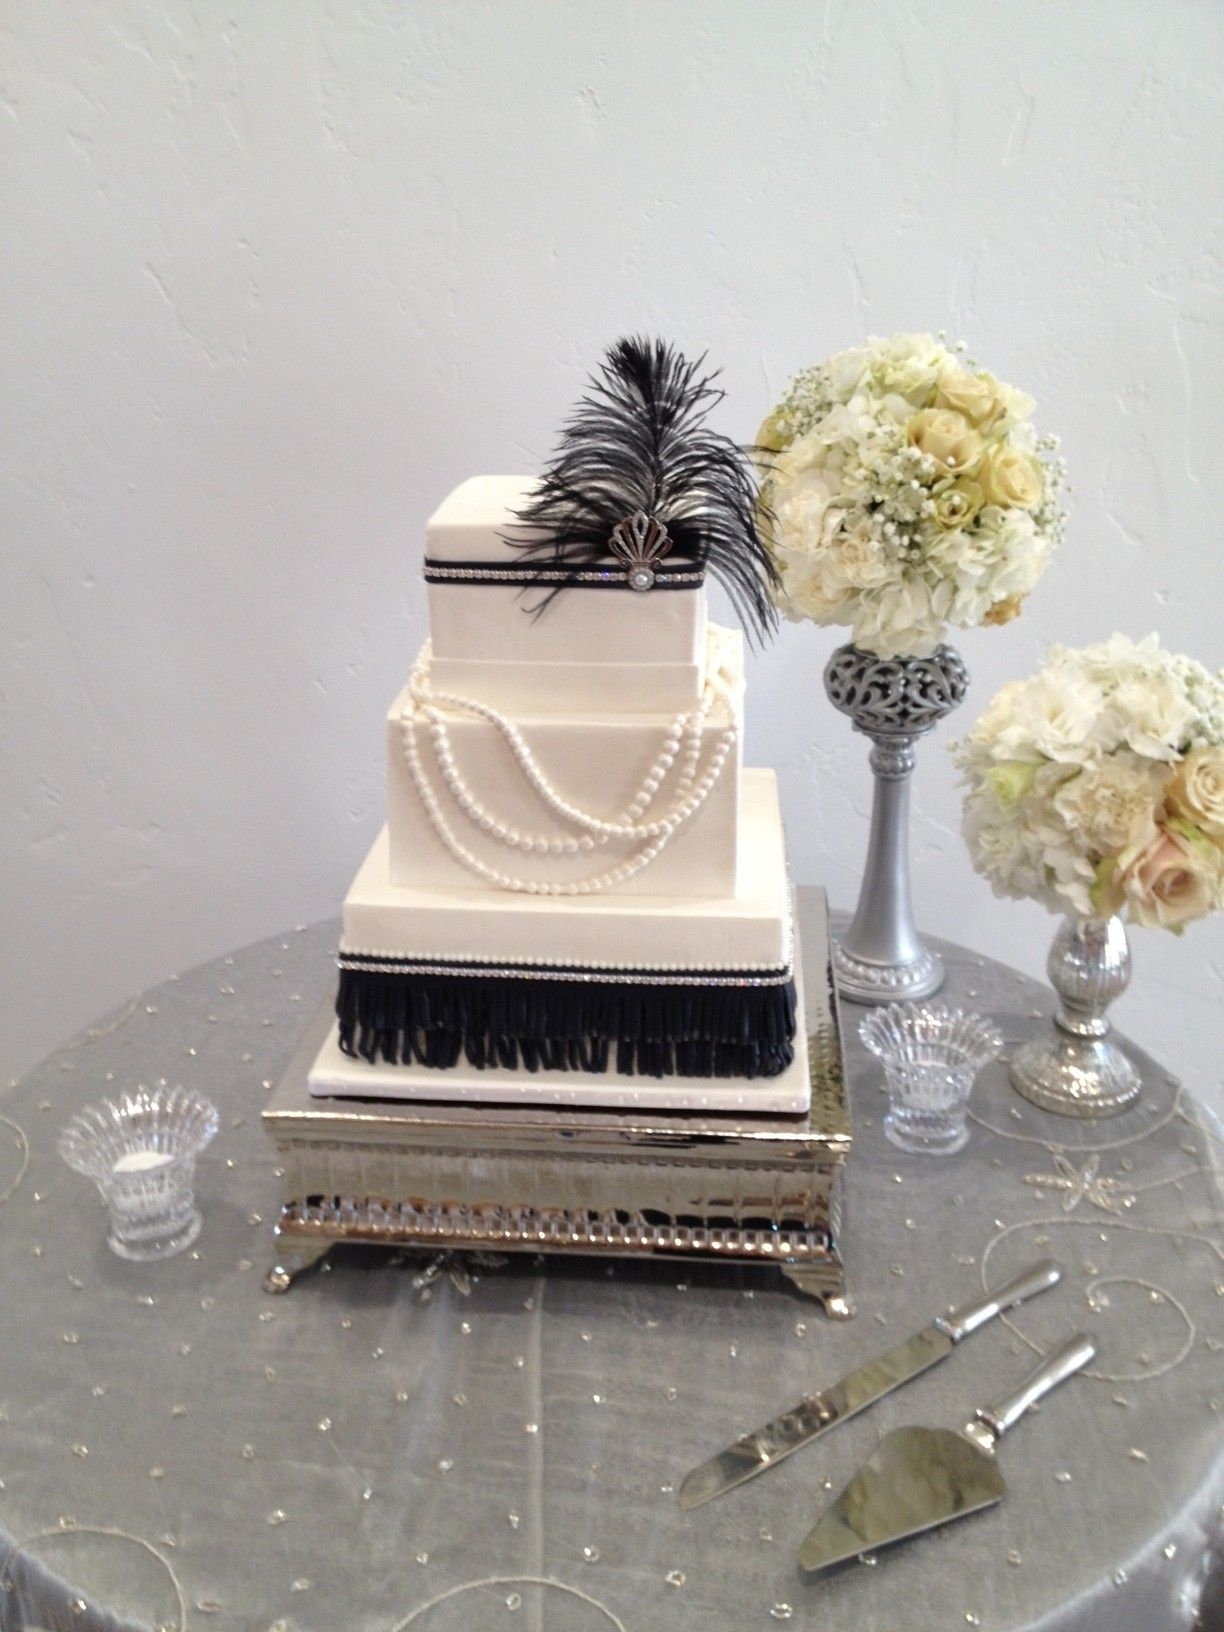 1920s wedding decoration ideas  Feathers pearls broaches fringeuld this cake be more perfect